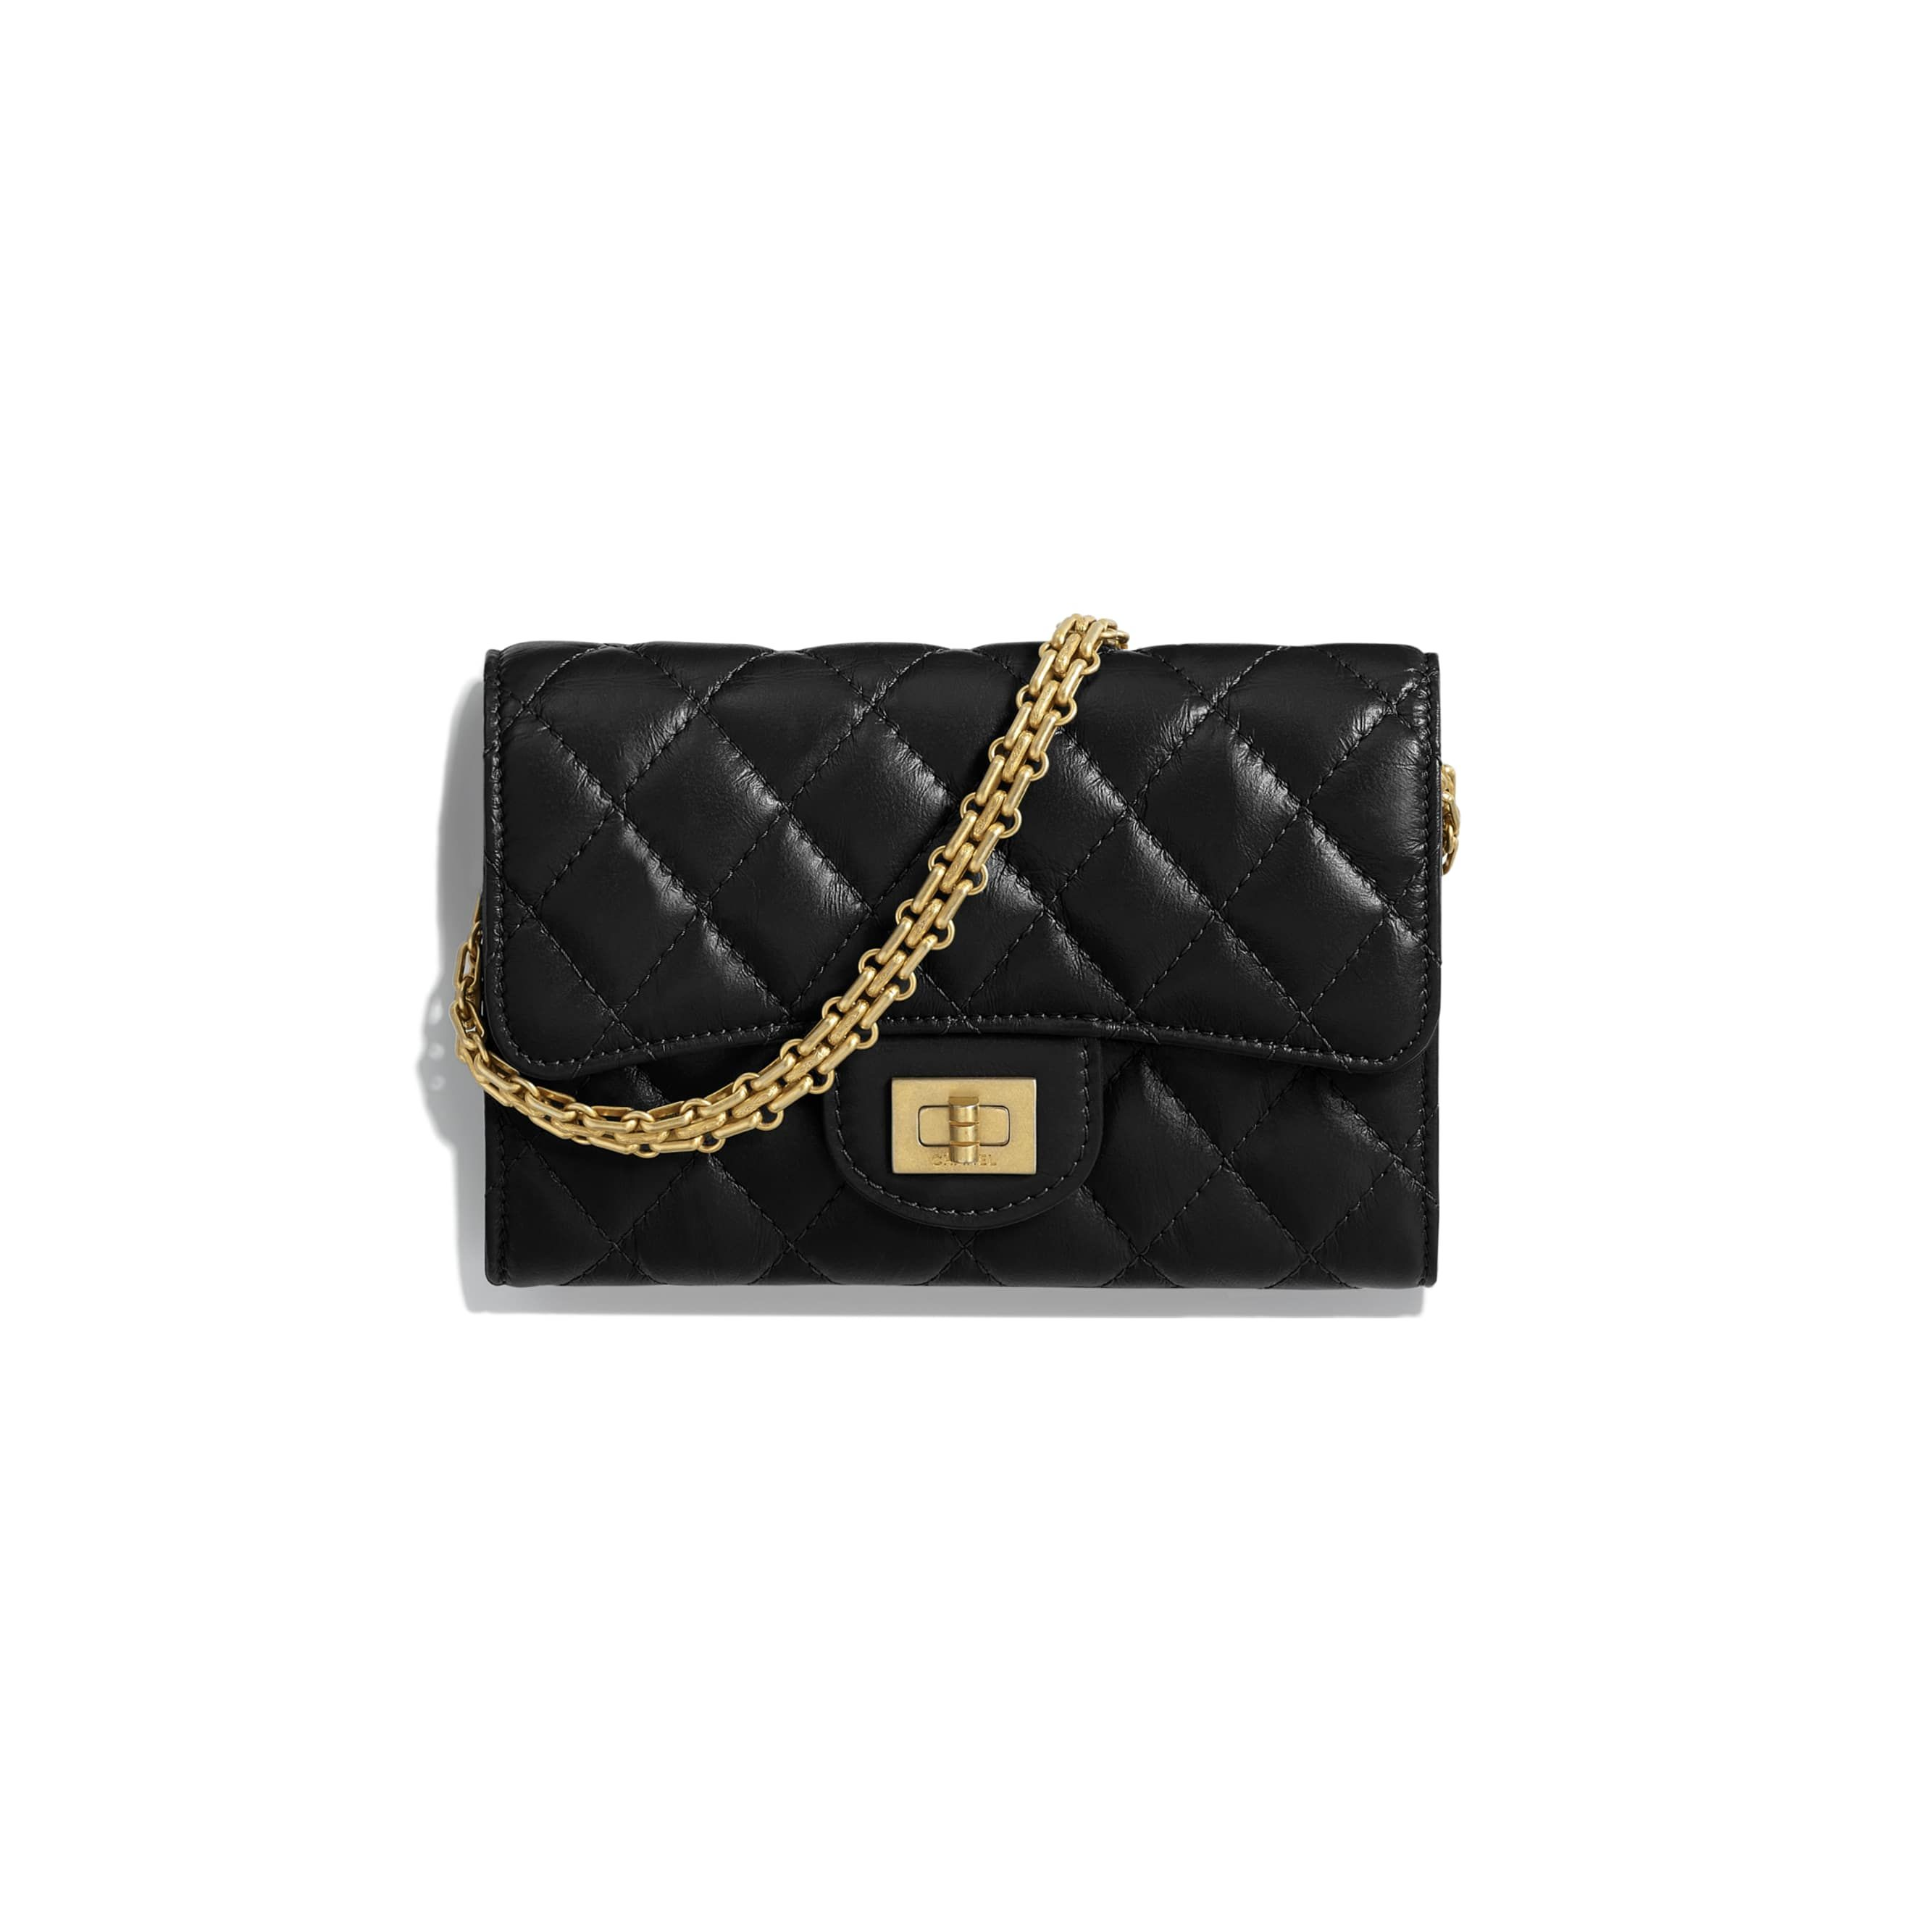 64f745a8b581 Aged Calfskin & Gold-Tone Metal Black 2.55 Clutch with Chain | CHANEL